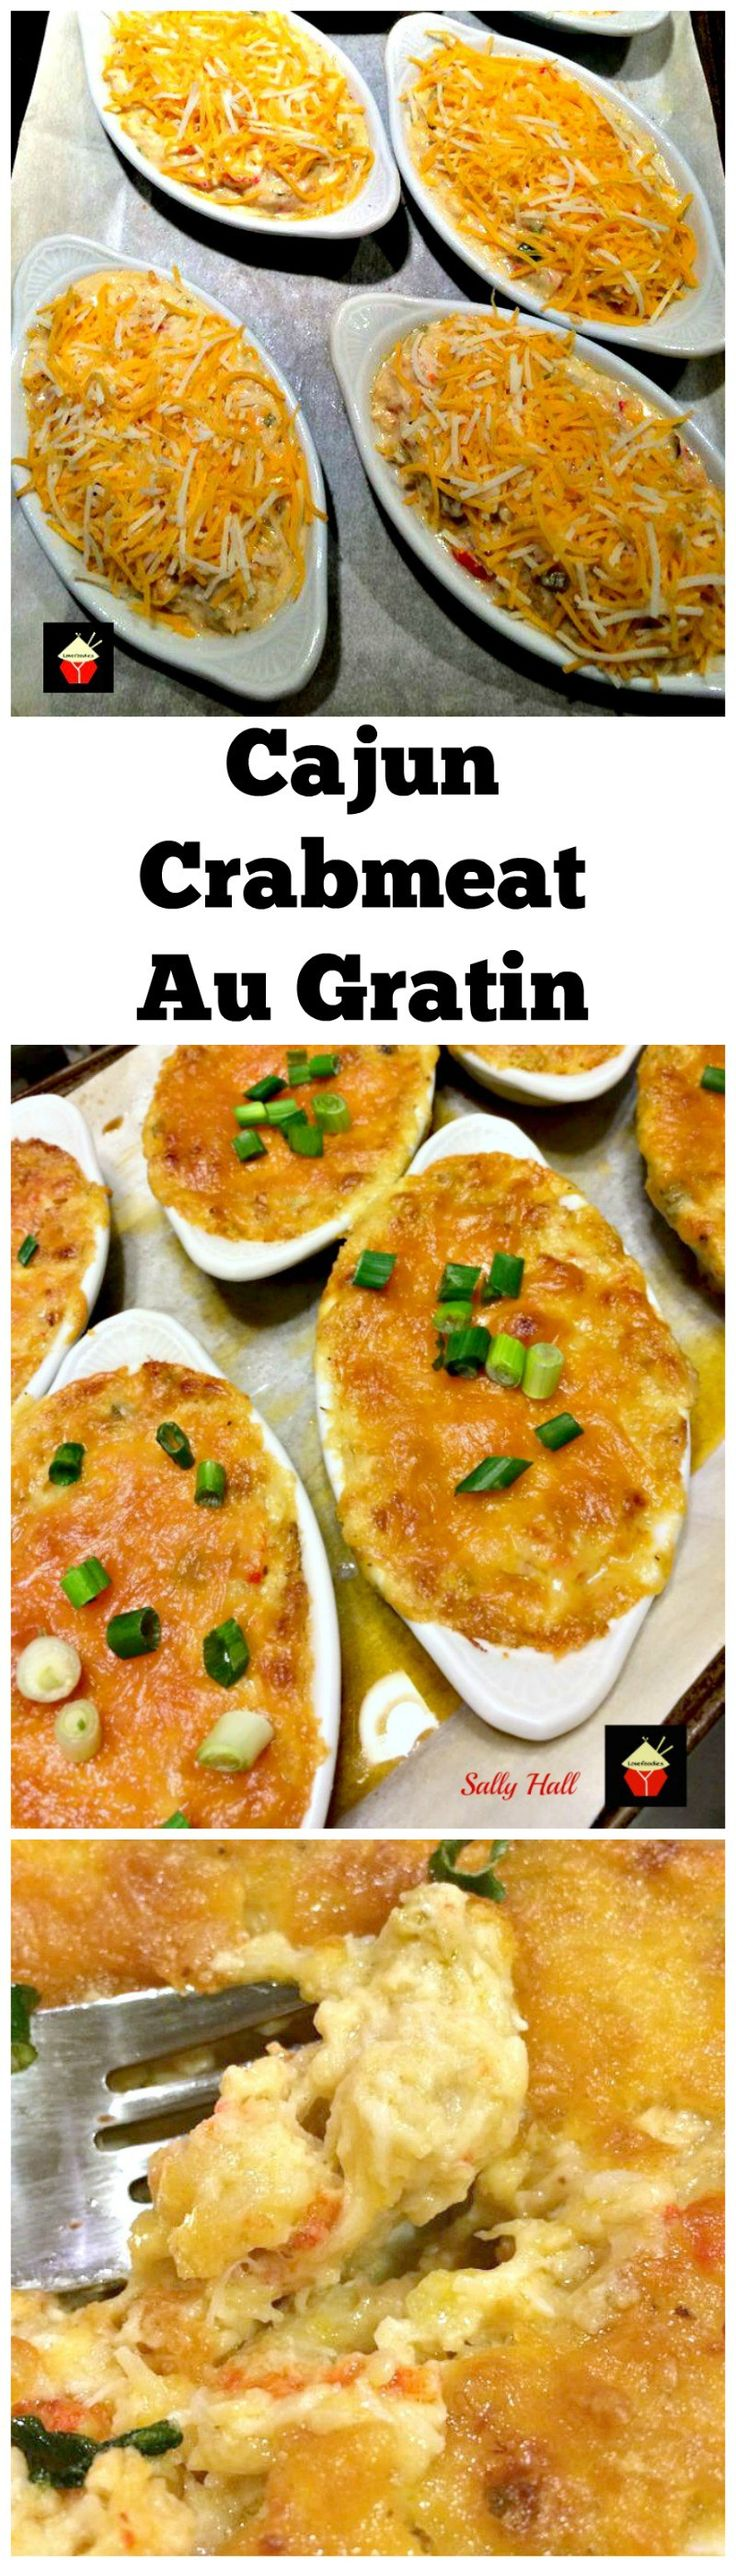 Cajun Crabmeat Au Gratin. A truly delicious recipe full of fantastic flavors. Options to add shrimp or crawfish too! Delicious served as an appetizer or main meal. | Lovefoodies.com